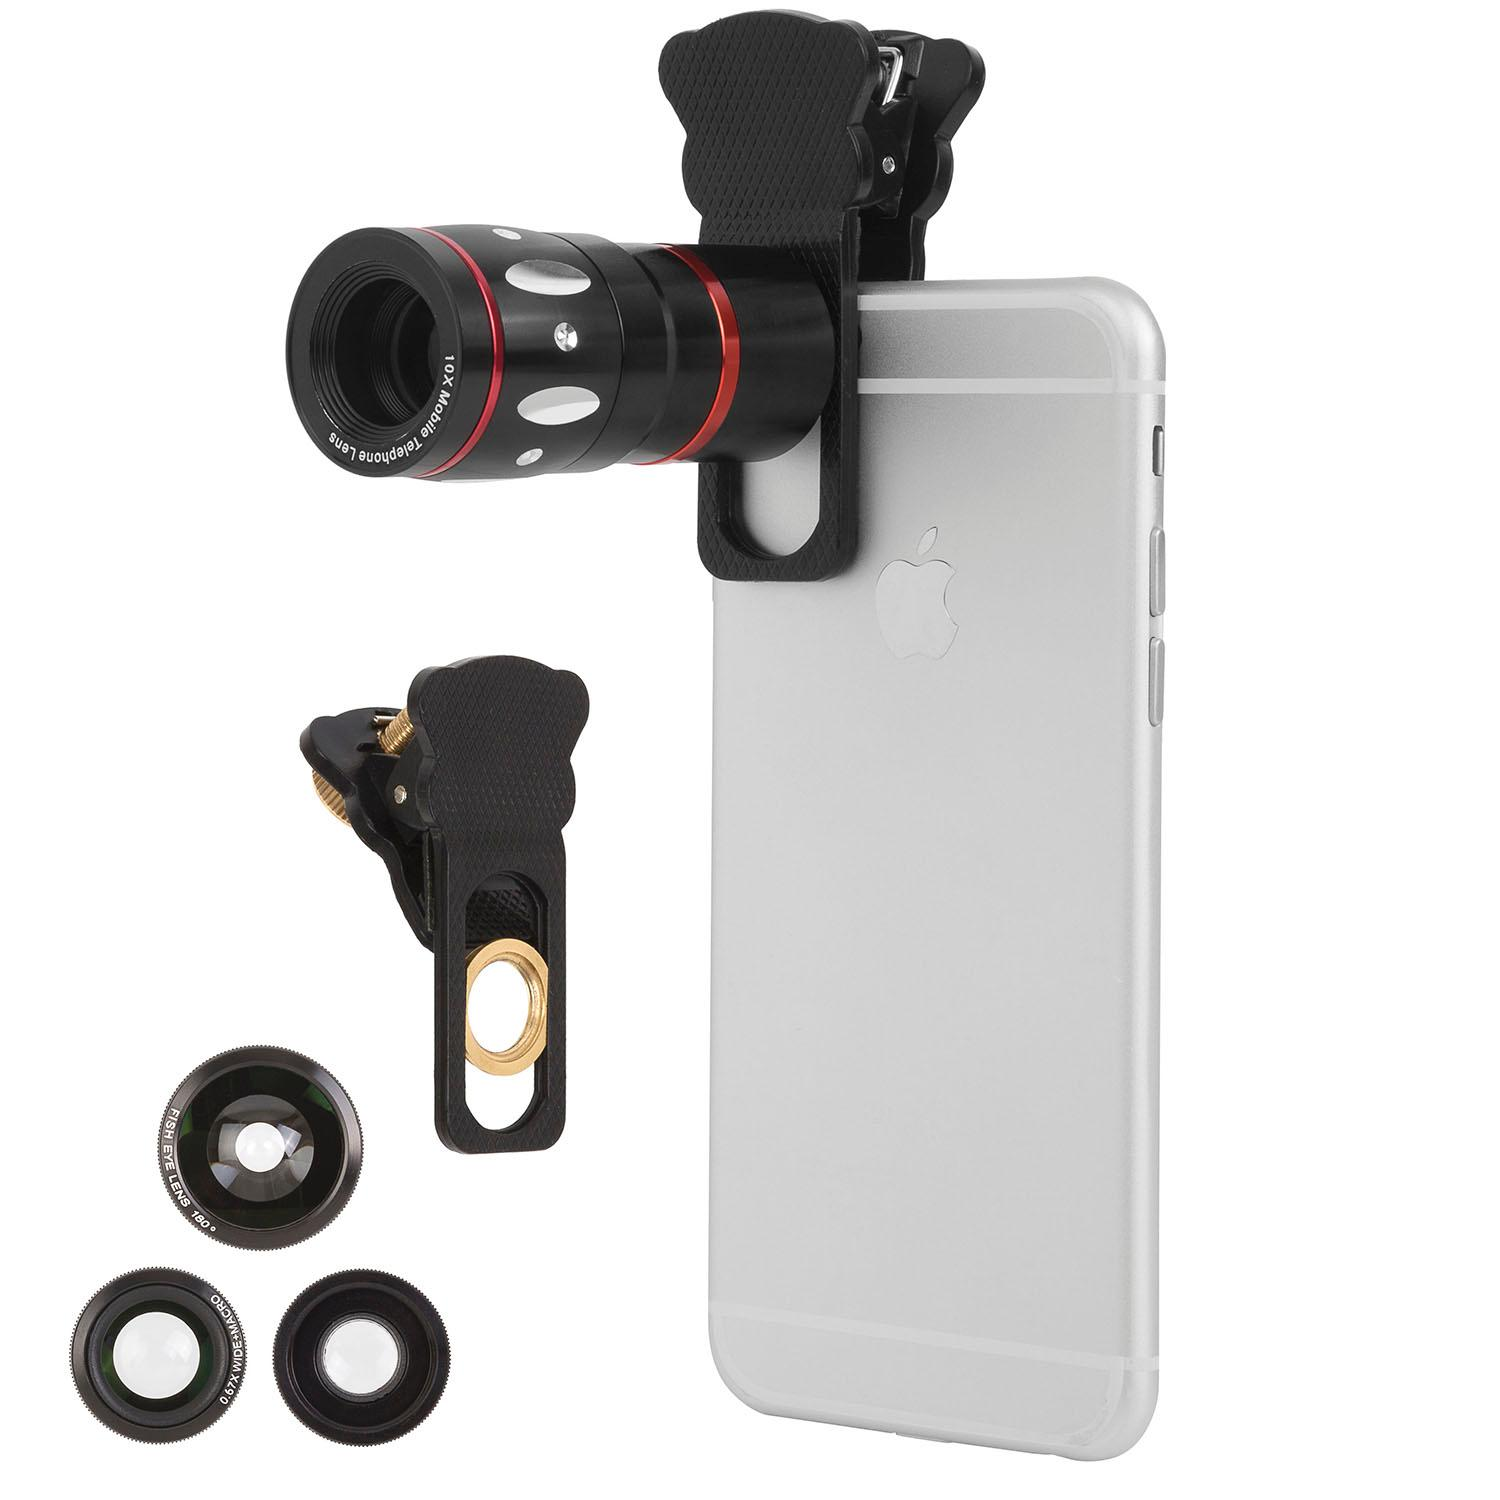 Amazon.com: Ivation Universal Smartphone Camera Lens Kit